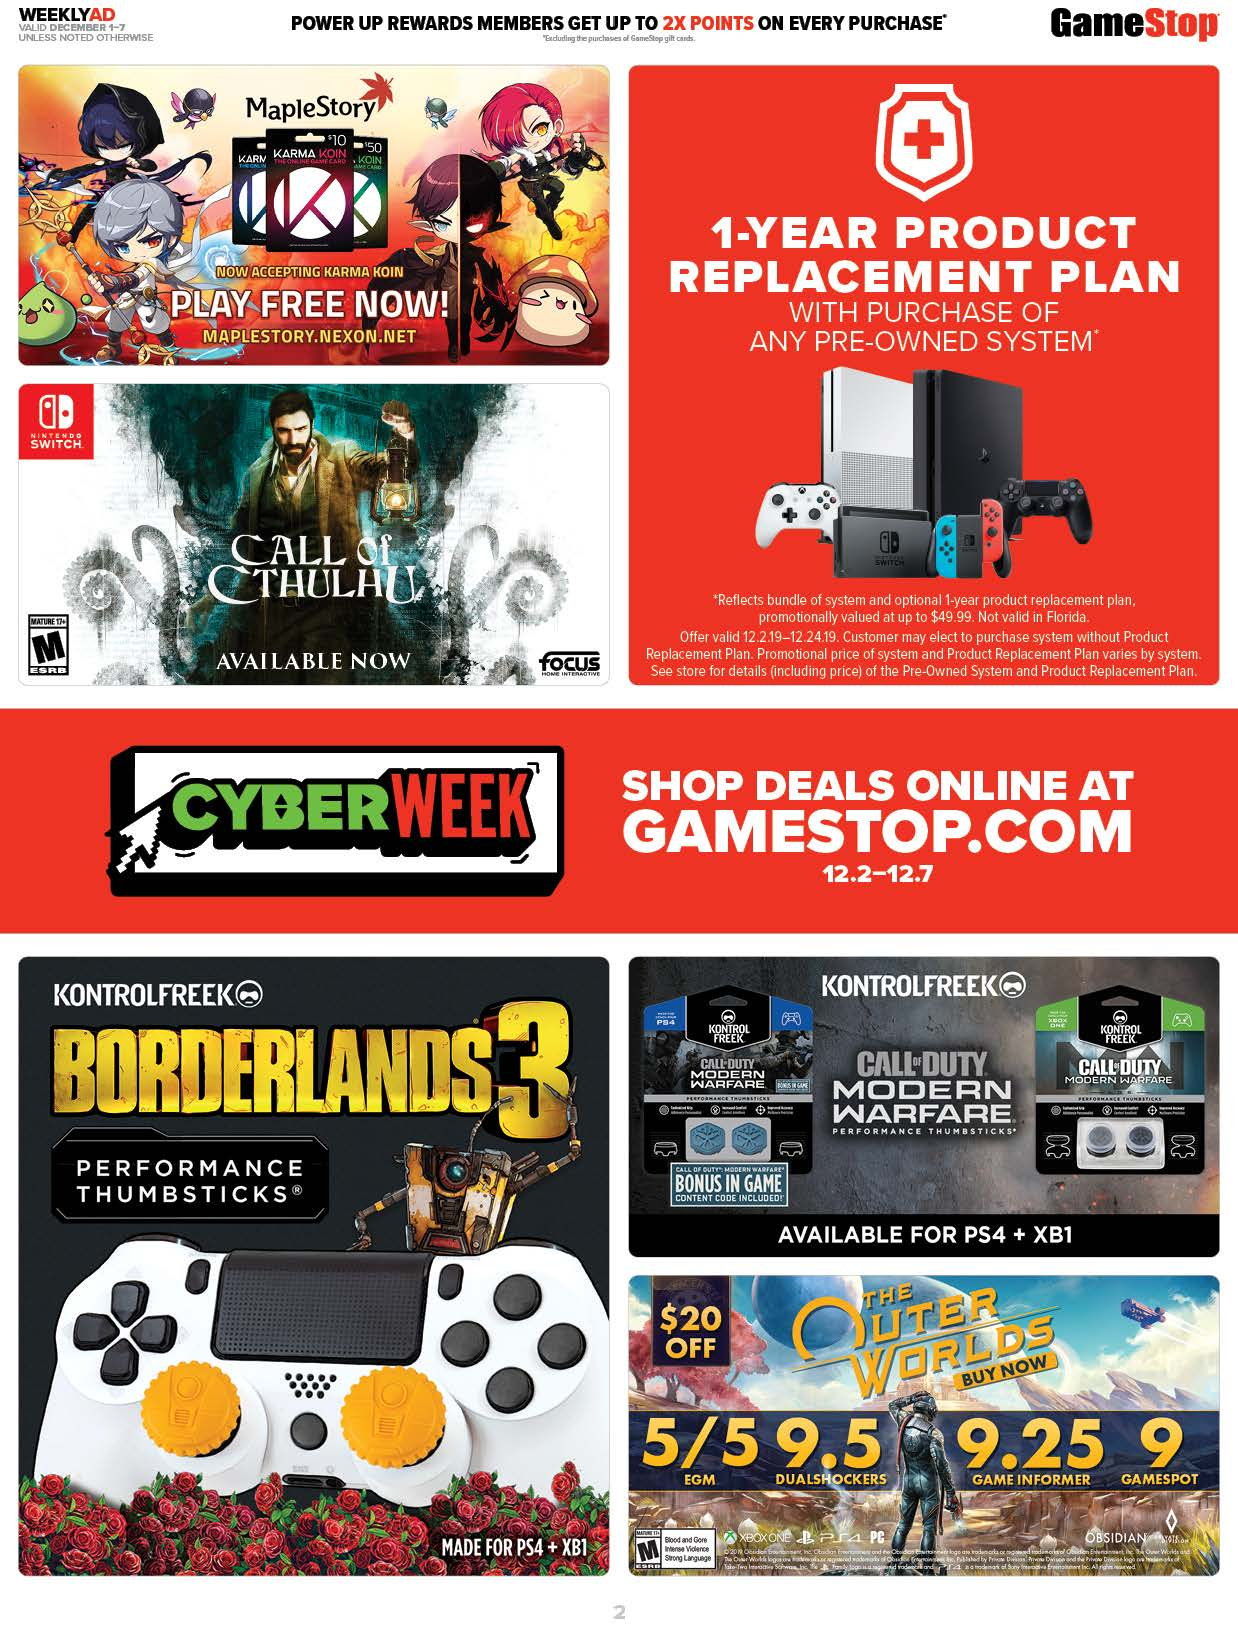 GameStop Cyber Monday 2019 Page 2